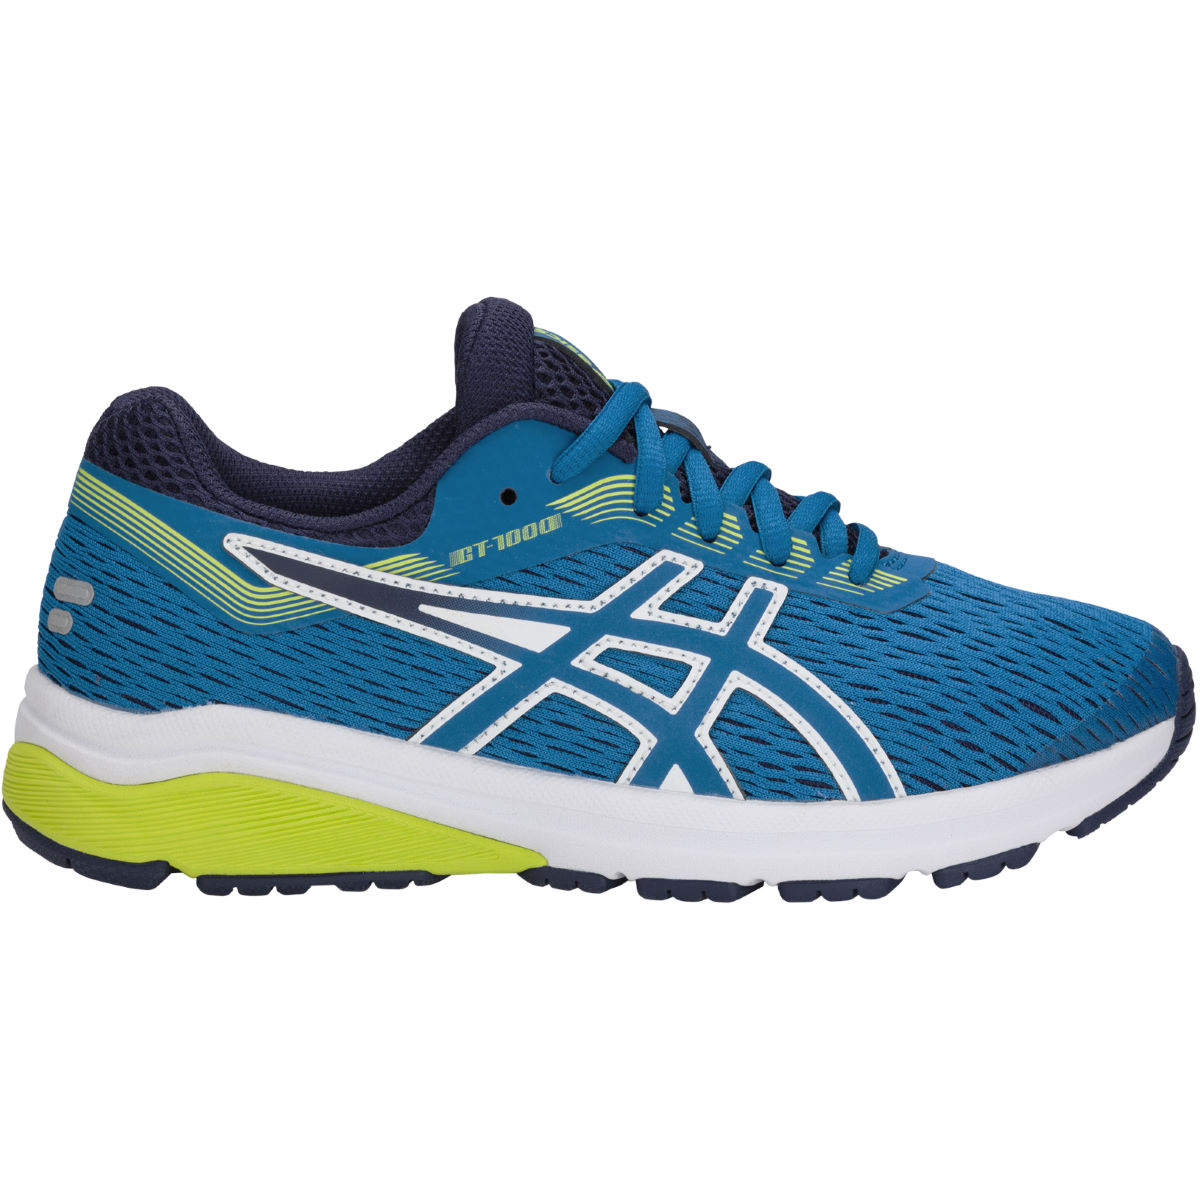 Asics Kids GT-1000 7 GS Shoes - Zapatillas de running